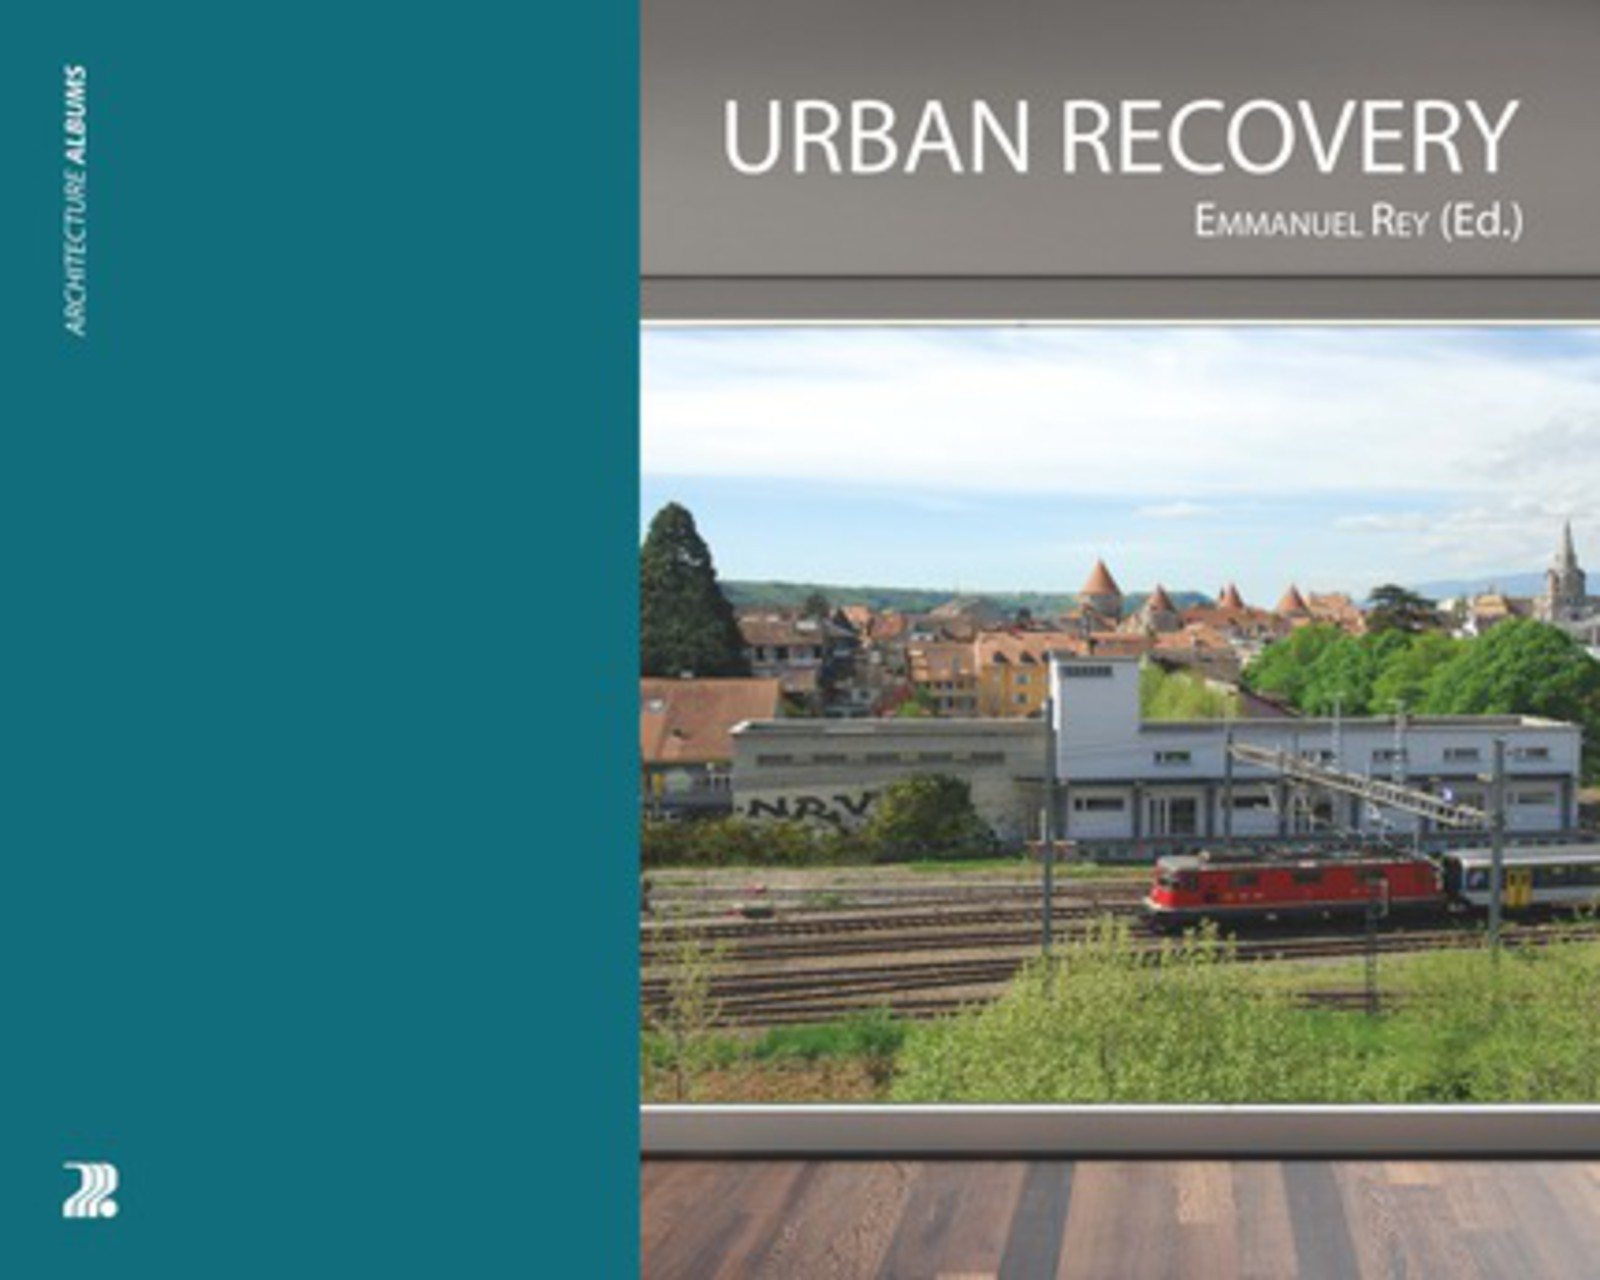 Urban, recovery